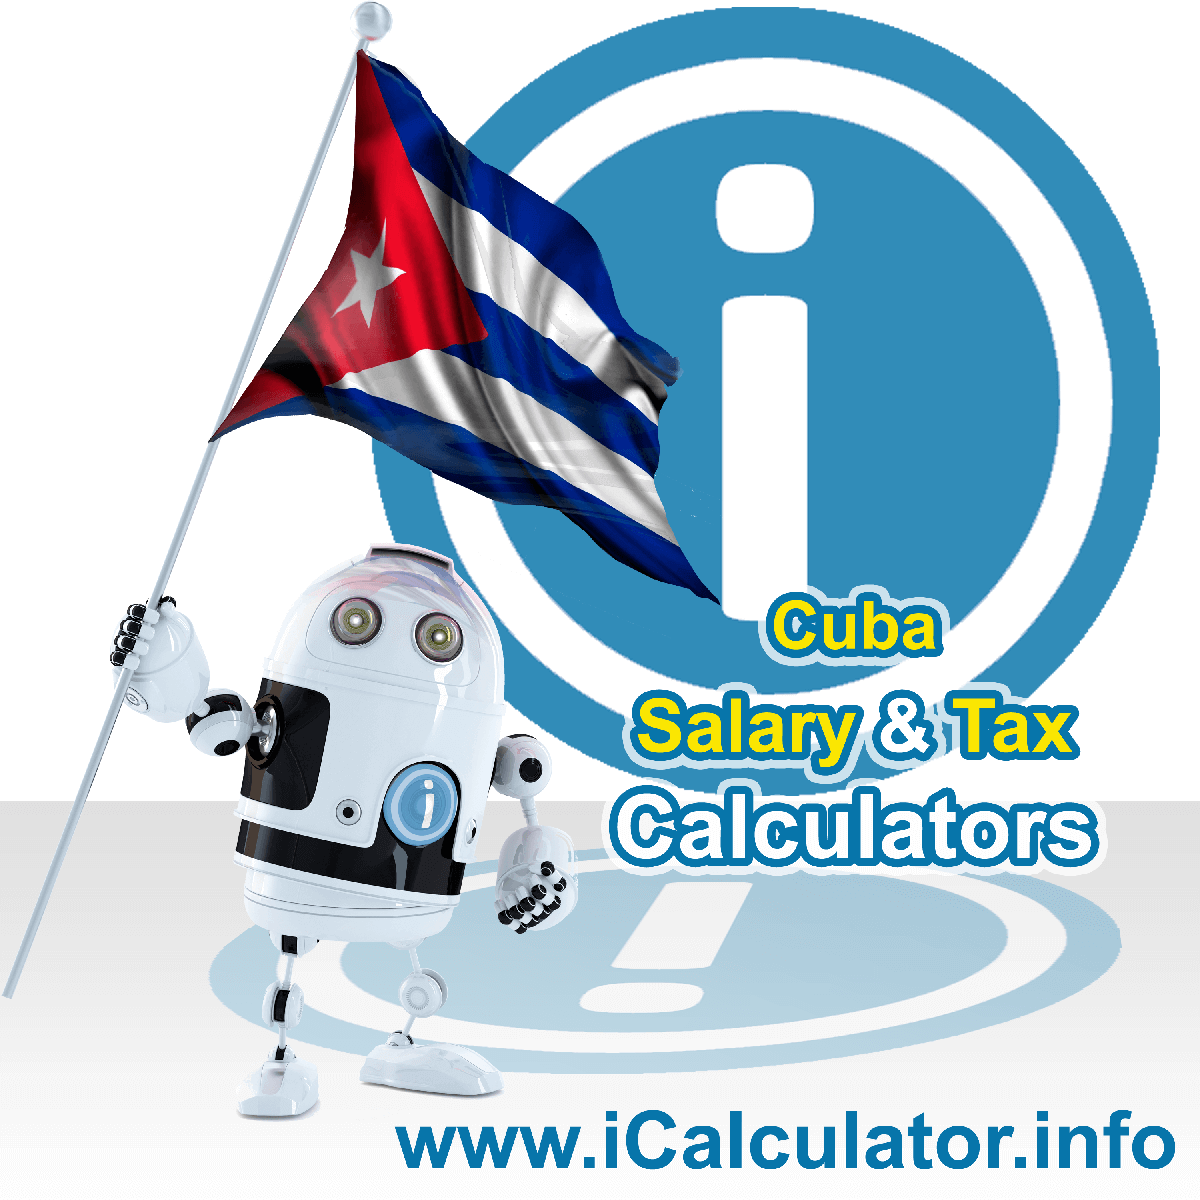 Cuba Salary Calculator. This image shows the Cubaese flag and information relating to the tax formula for the Cuba Tax Calculator